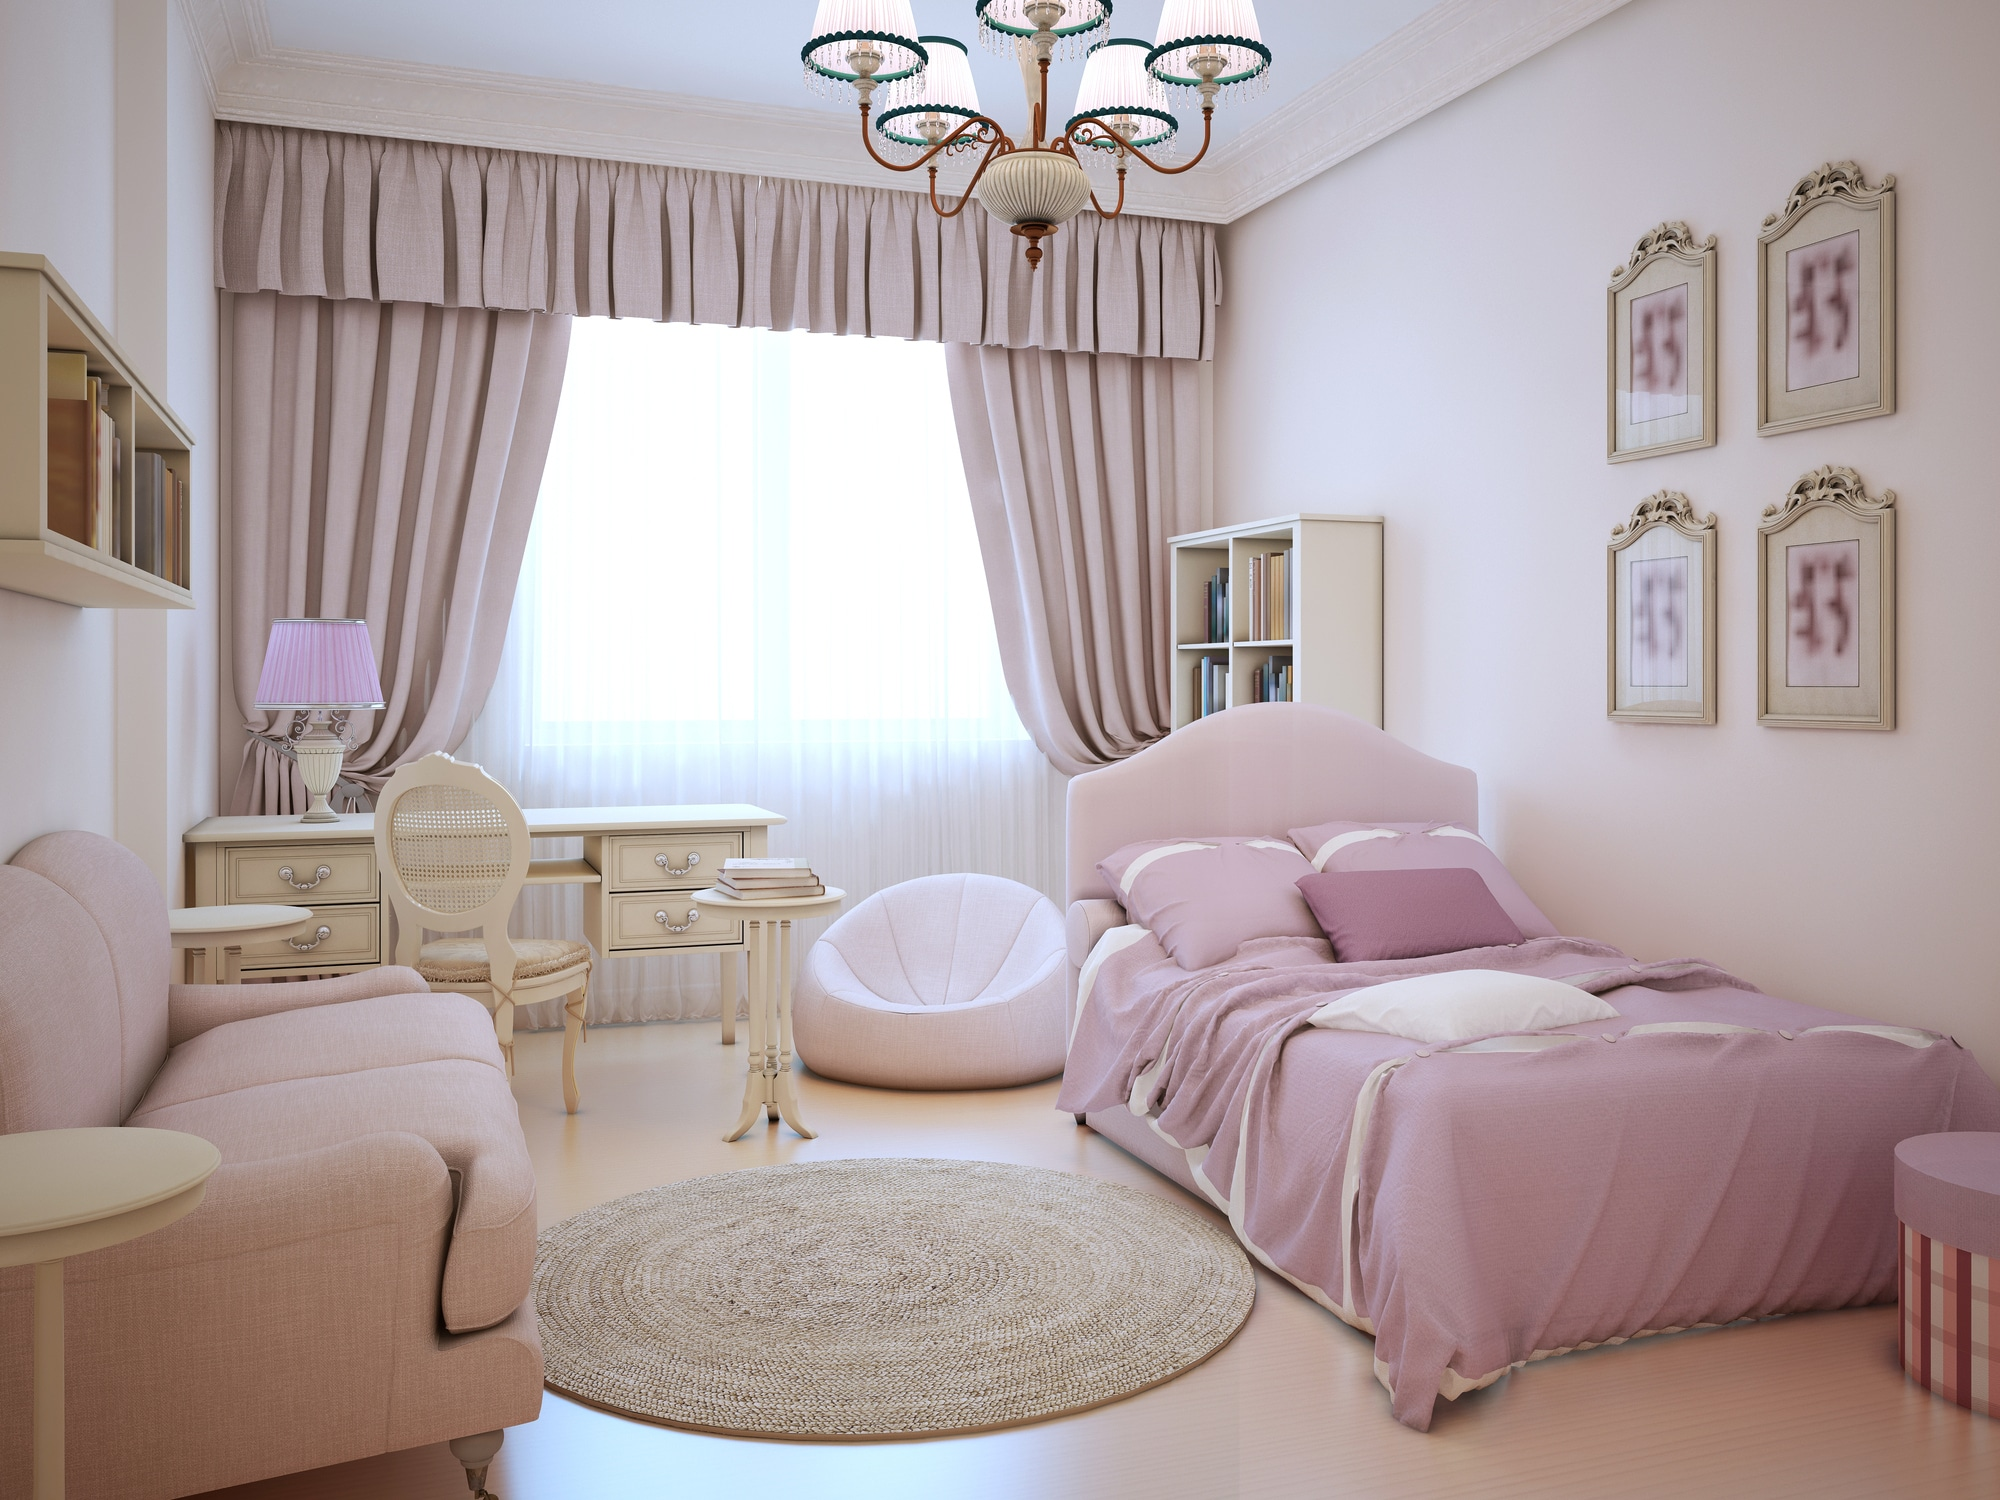 Une chambre trop girly